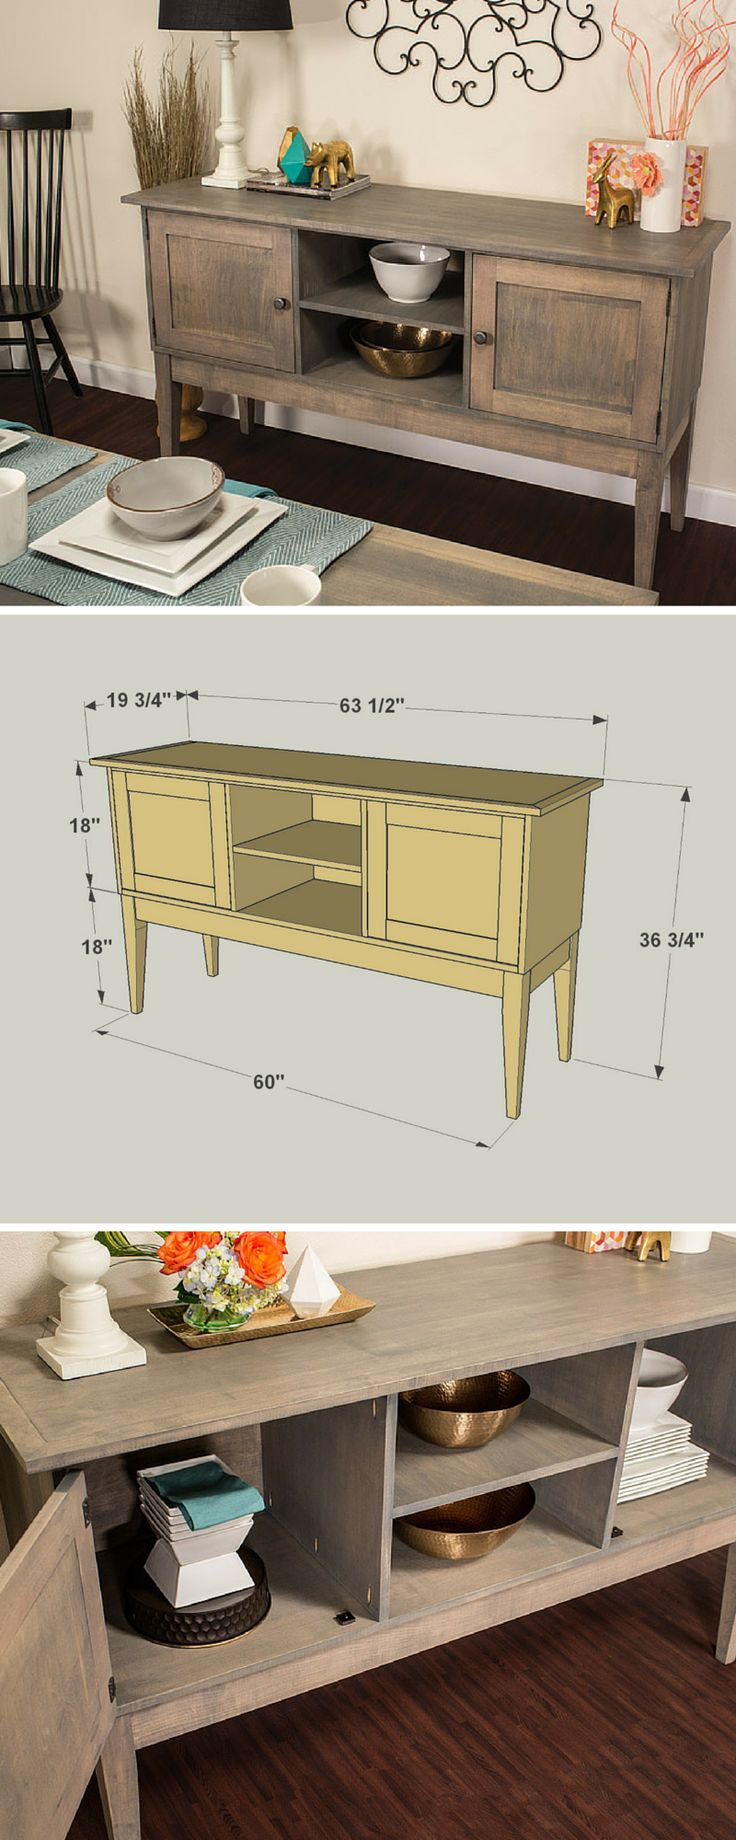 How To Build A DIY Dining Room Sideboard